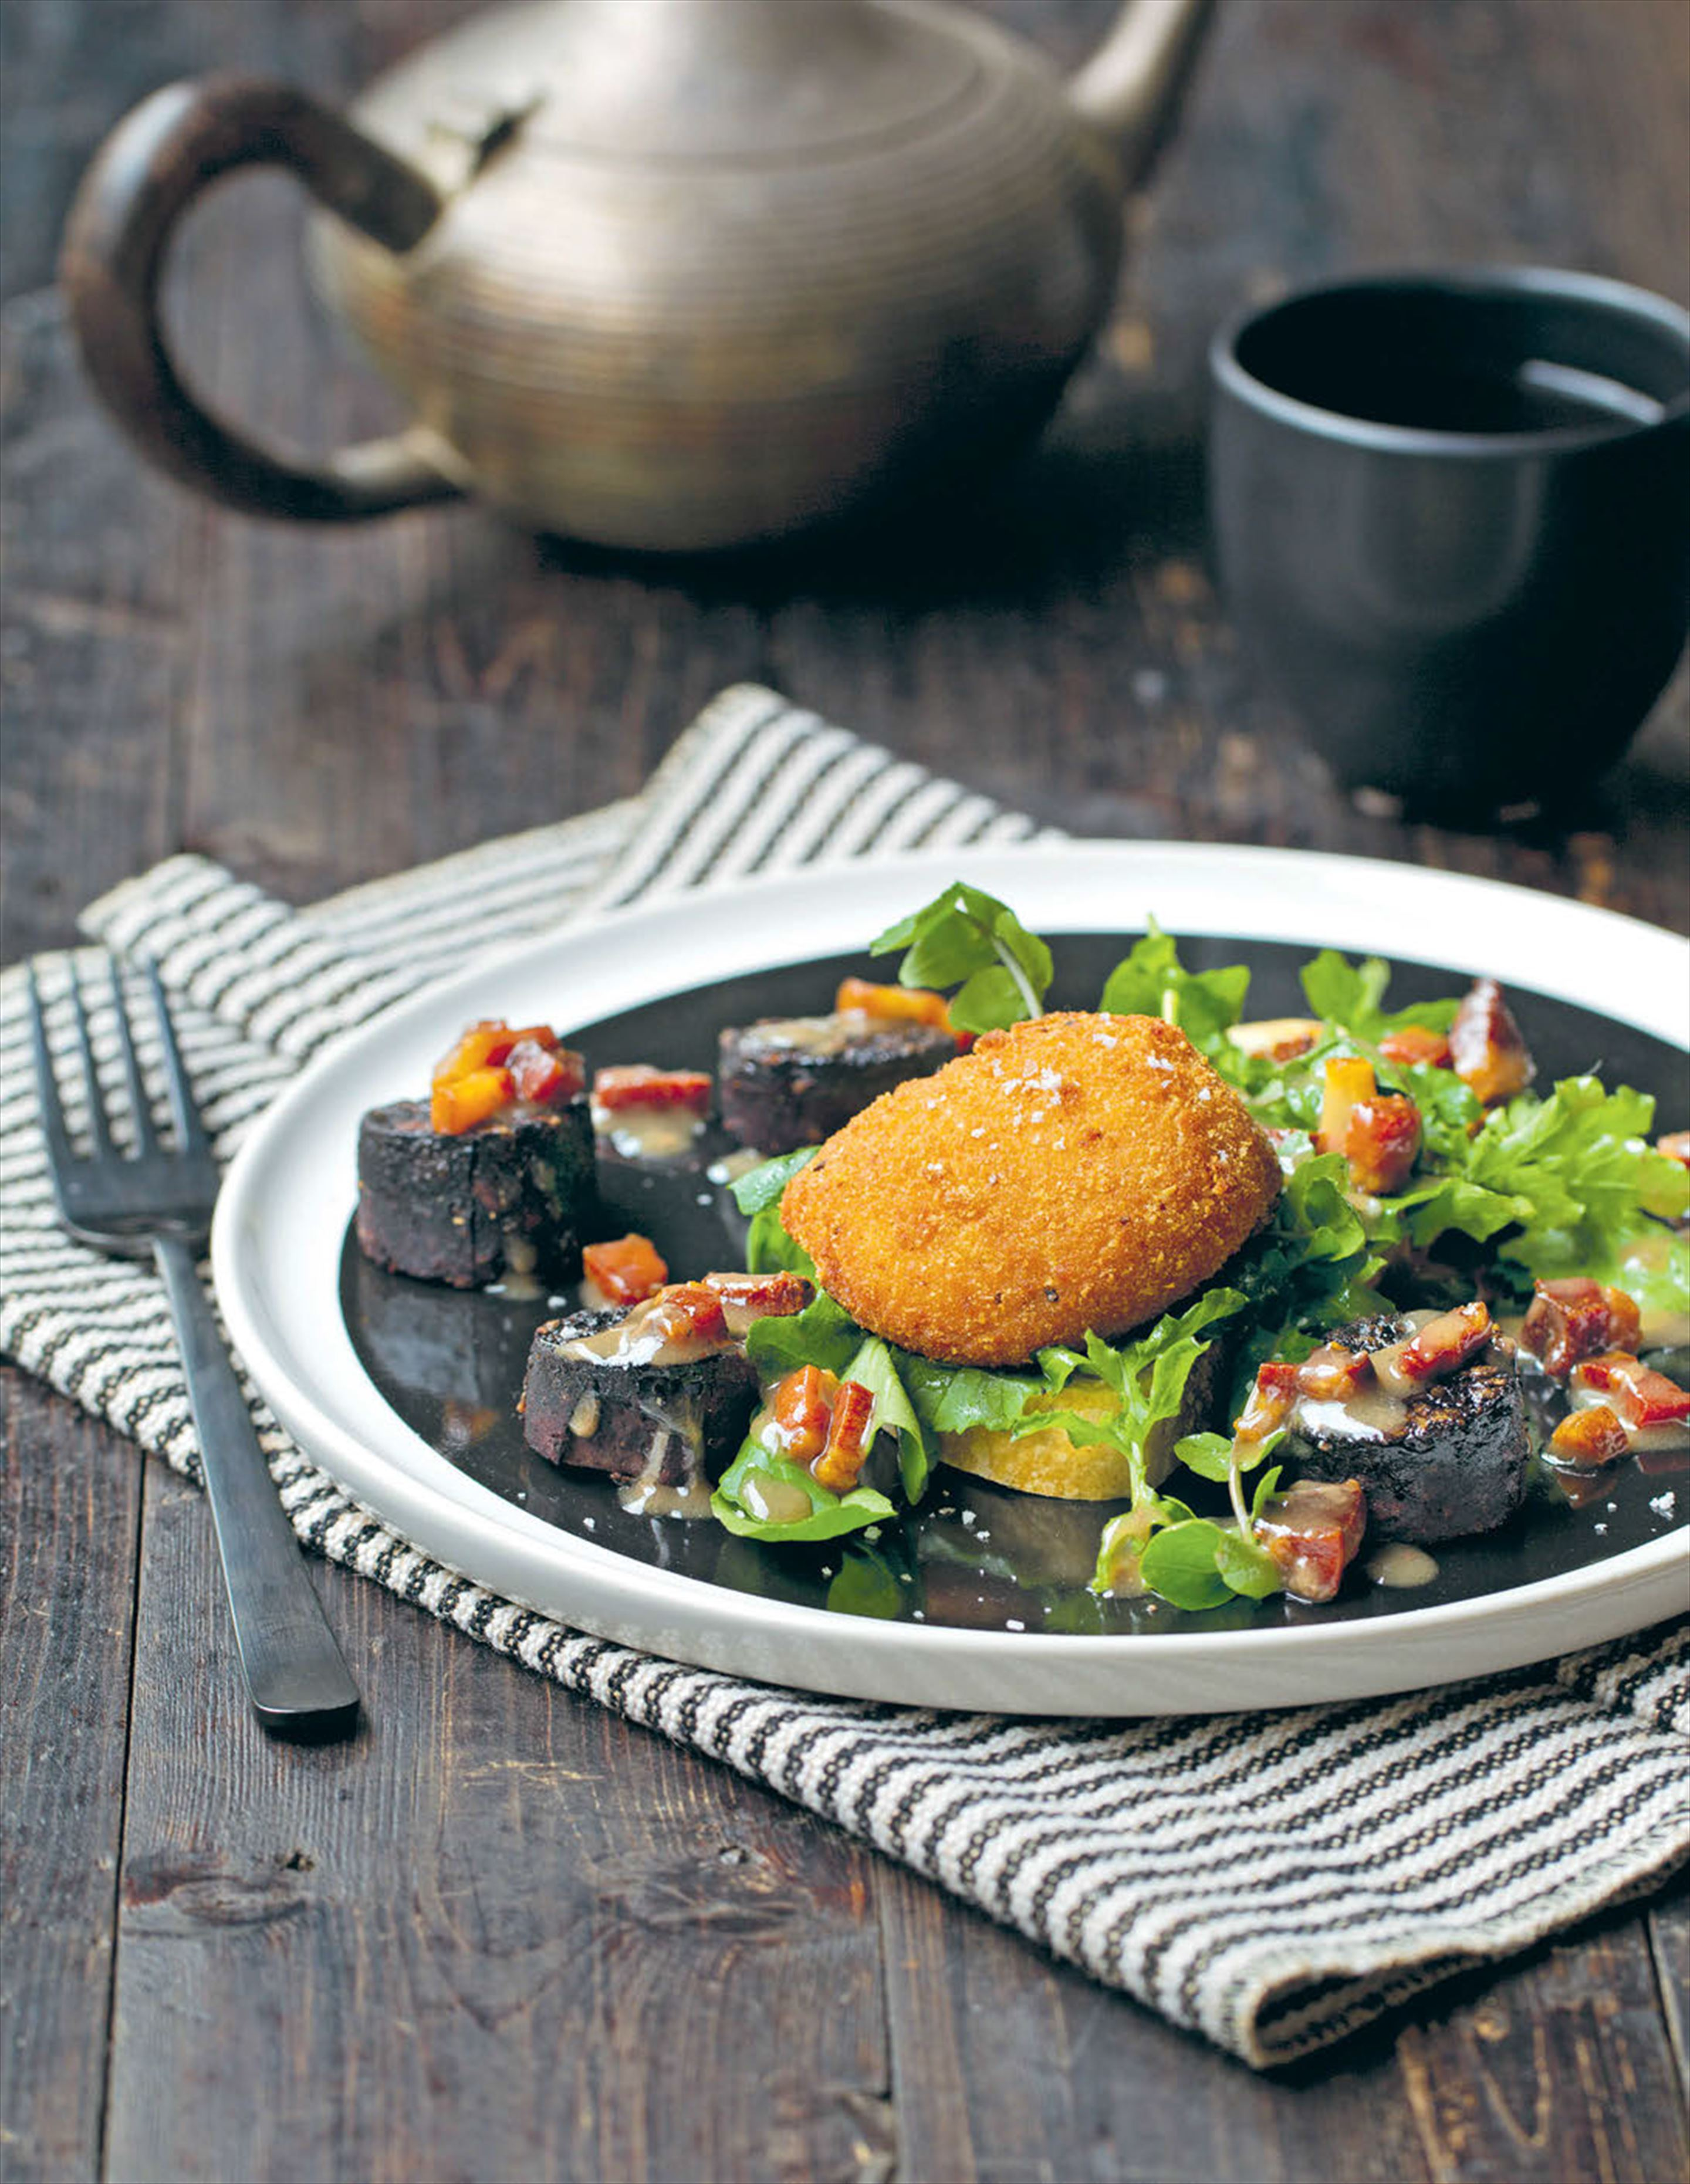 Crumbed coddled eggs with black pudding salad